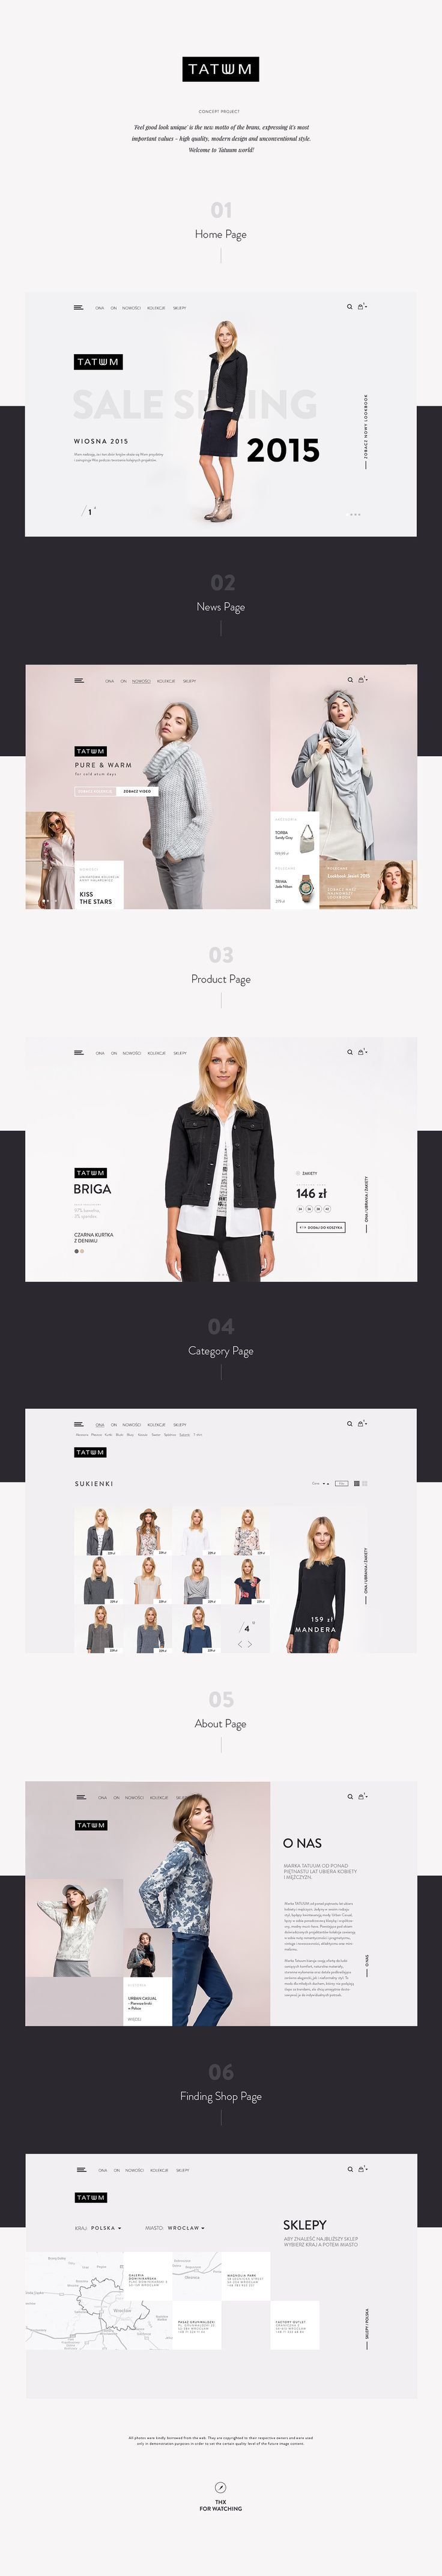 Concept web design for Tatuum - high quality, modern design and unconventional style- polish fashion brand.